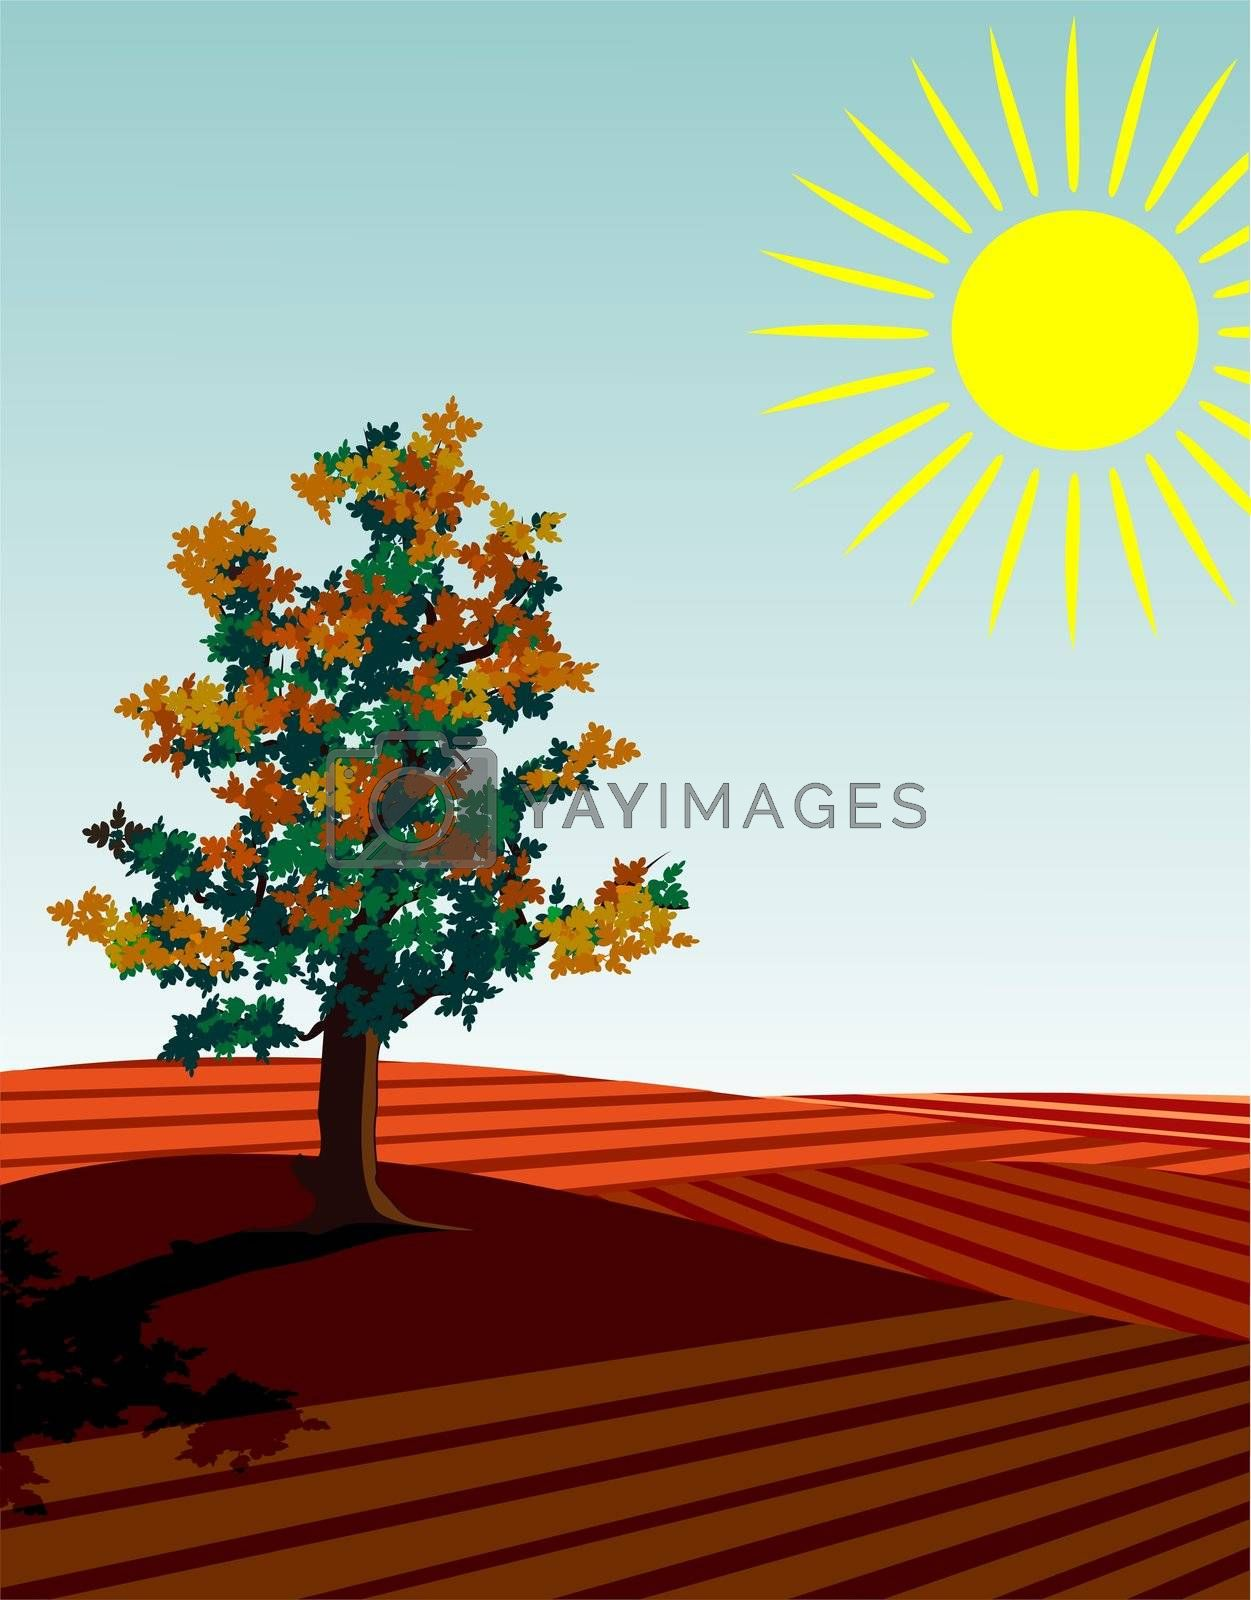 four seasons illustration: autumn single tree in the fields at harvest time